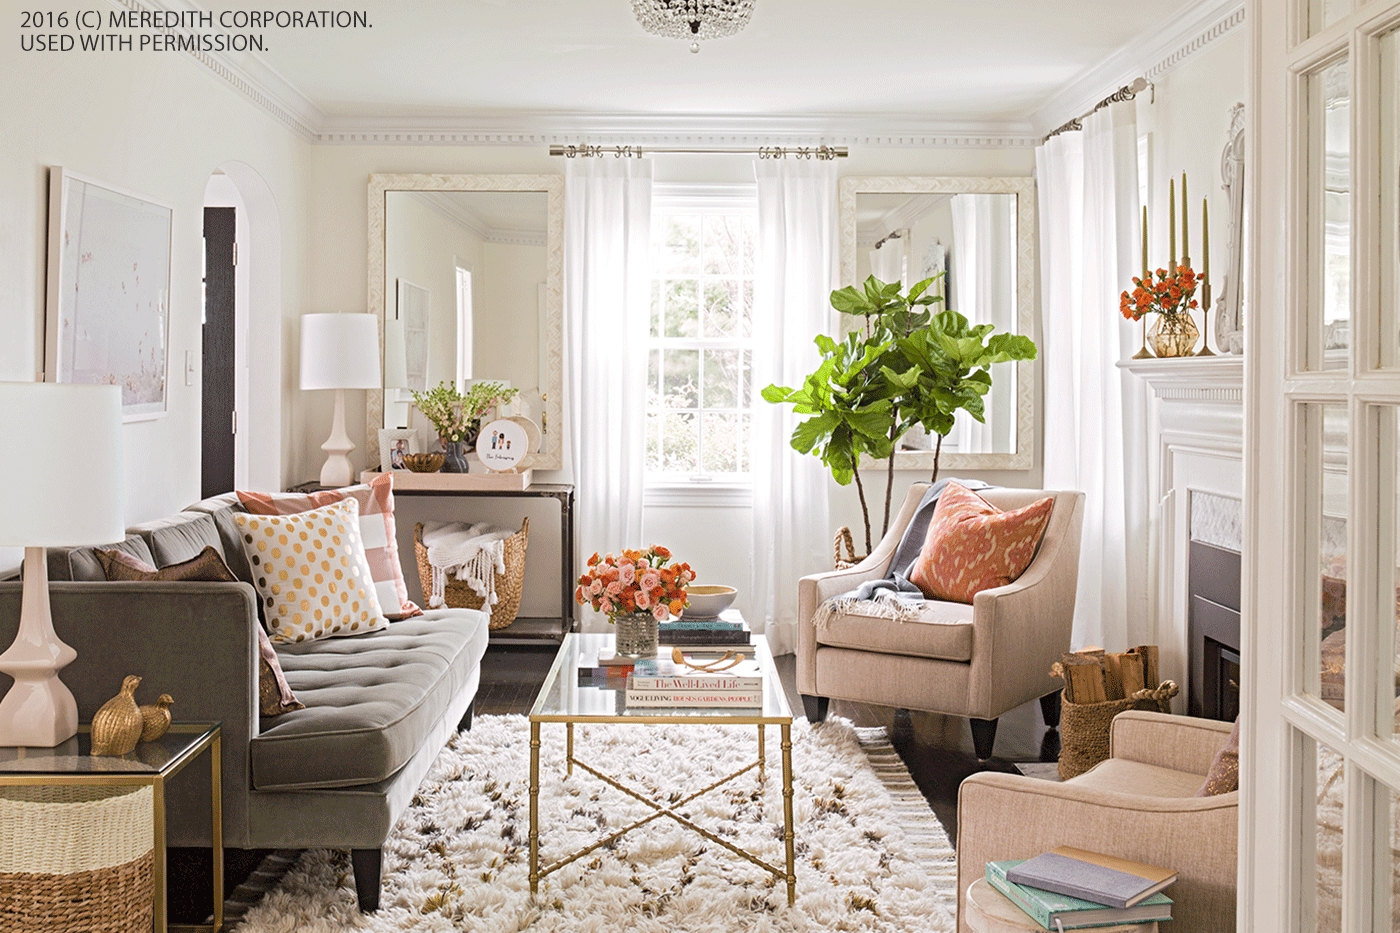 10 Cute Small Formal Living Room Ideas living room solutions design and furniture for small spaces 2021